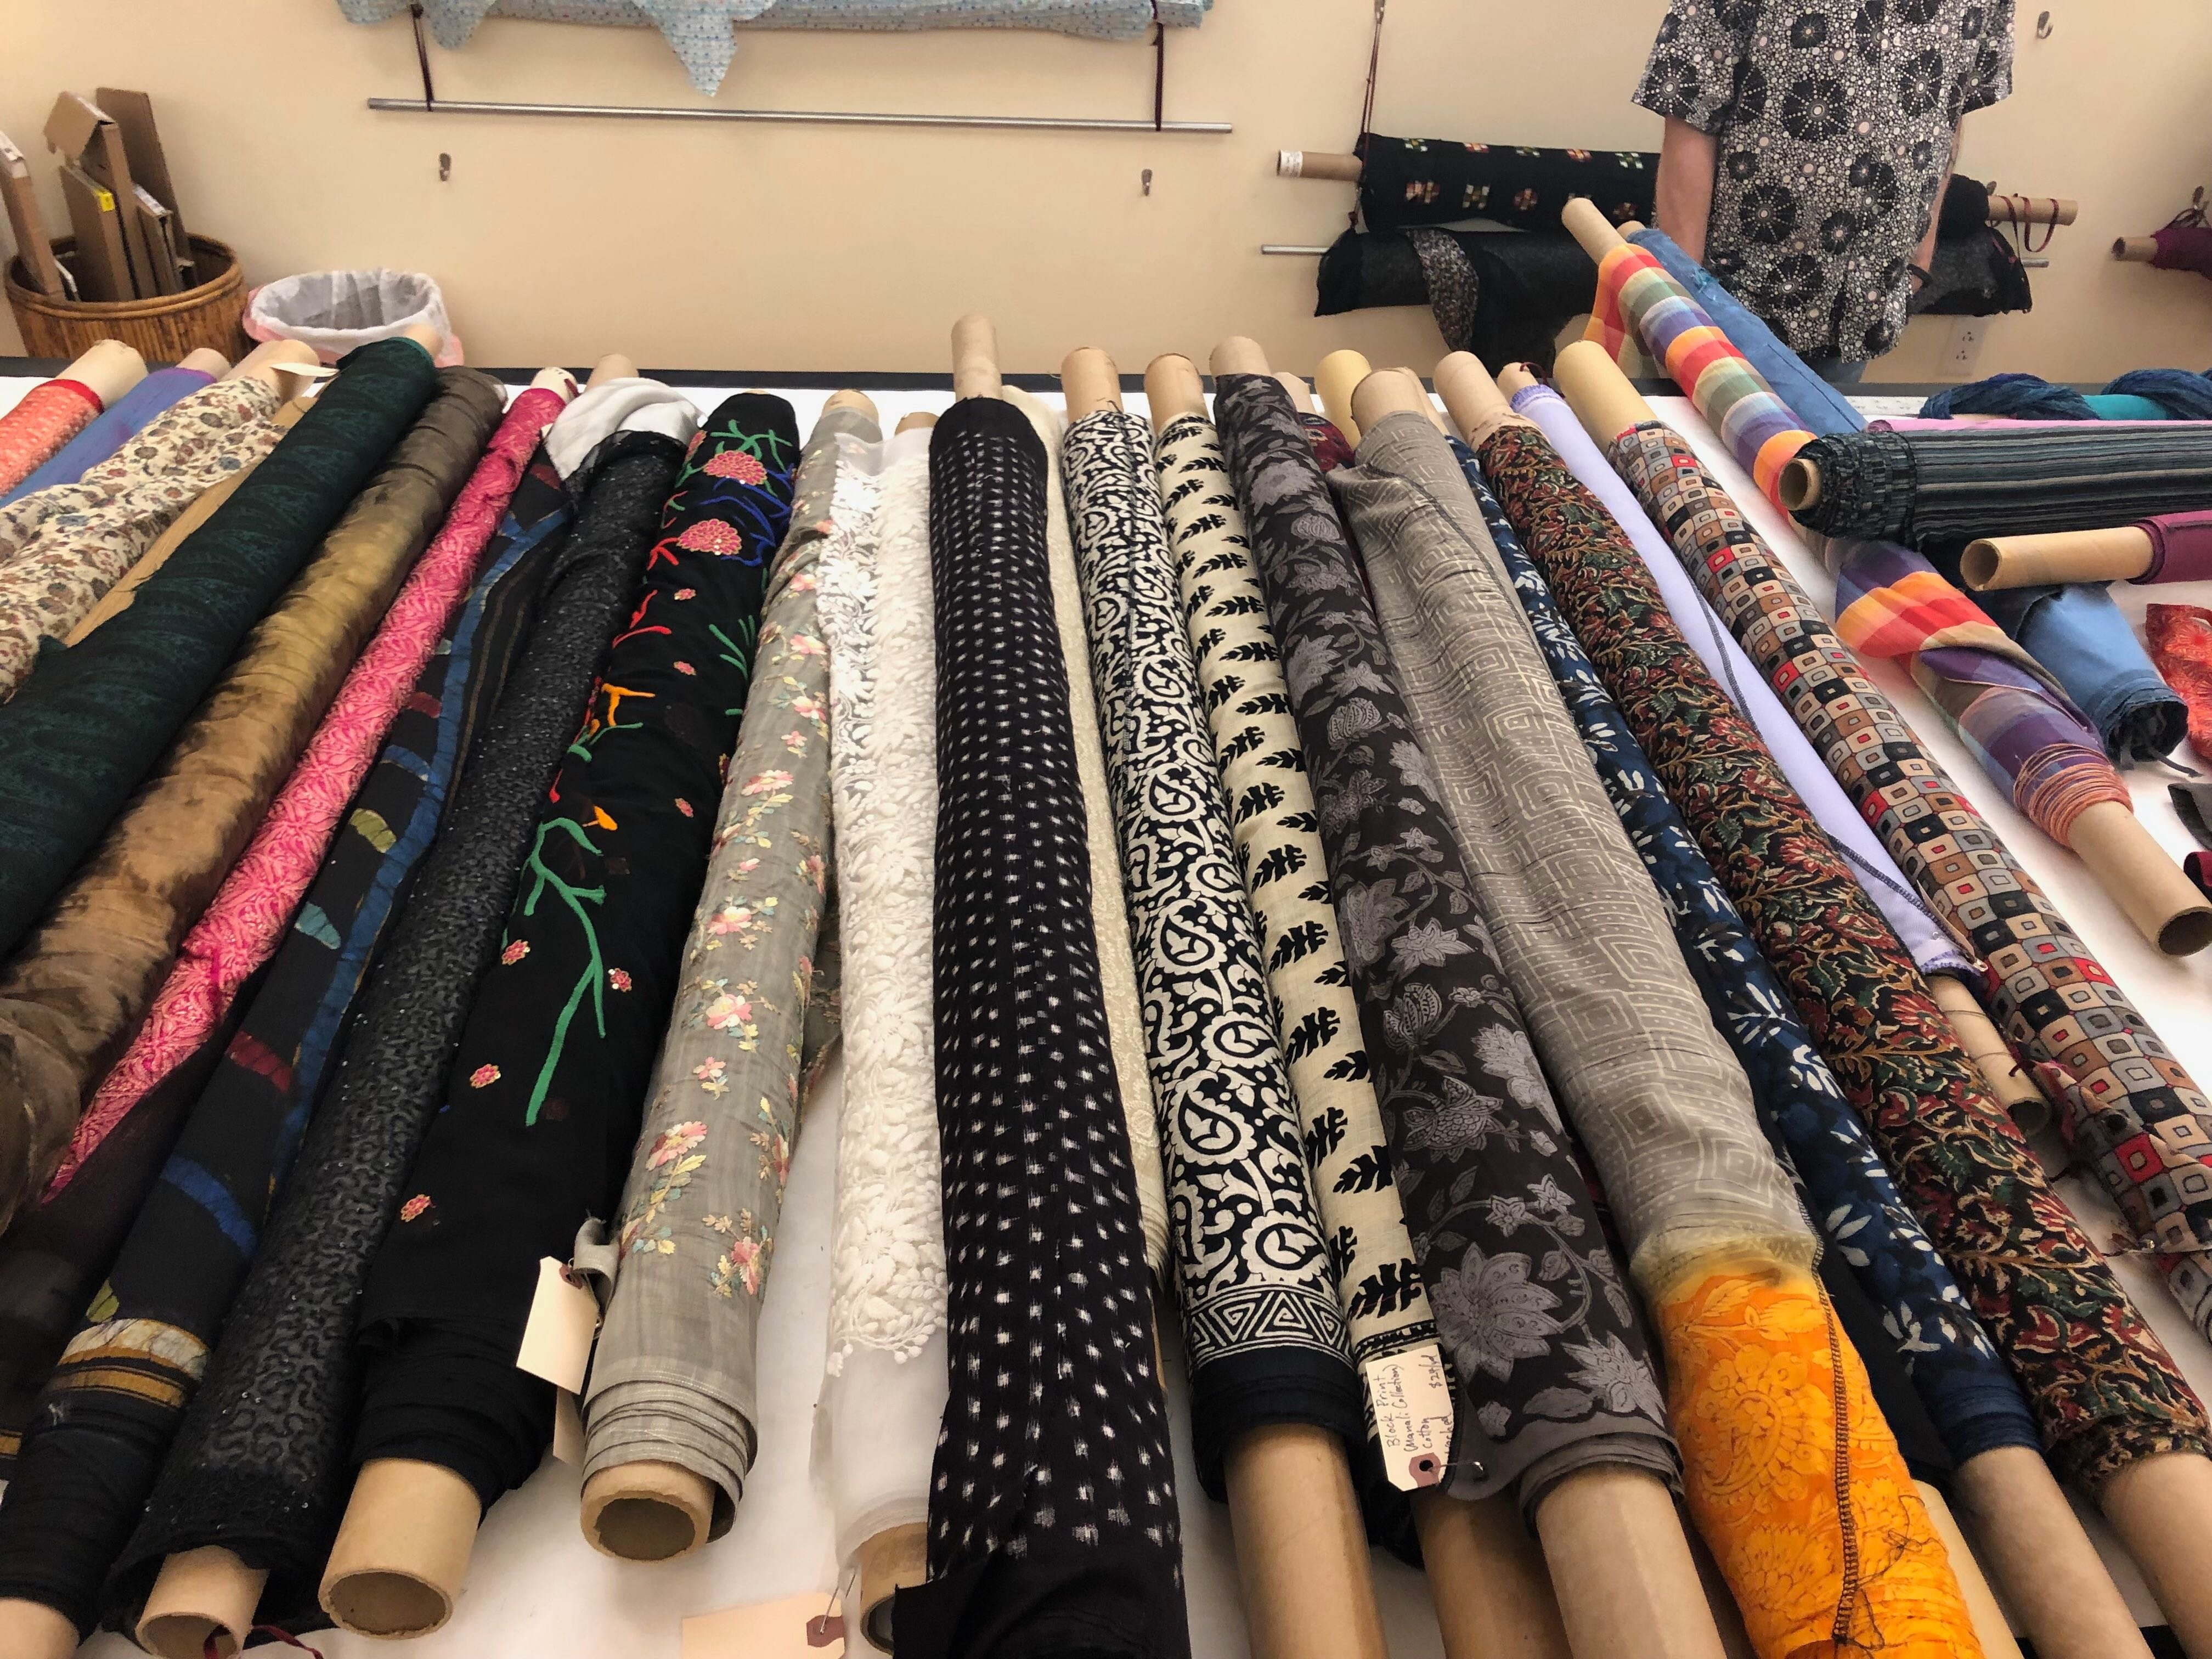 853b9e3a4d8 Bespoke to offer fabrics and textiles from India at Silk & Spice event